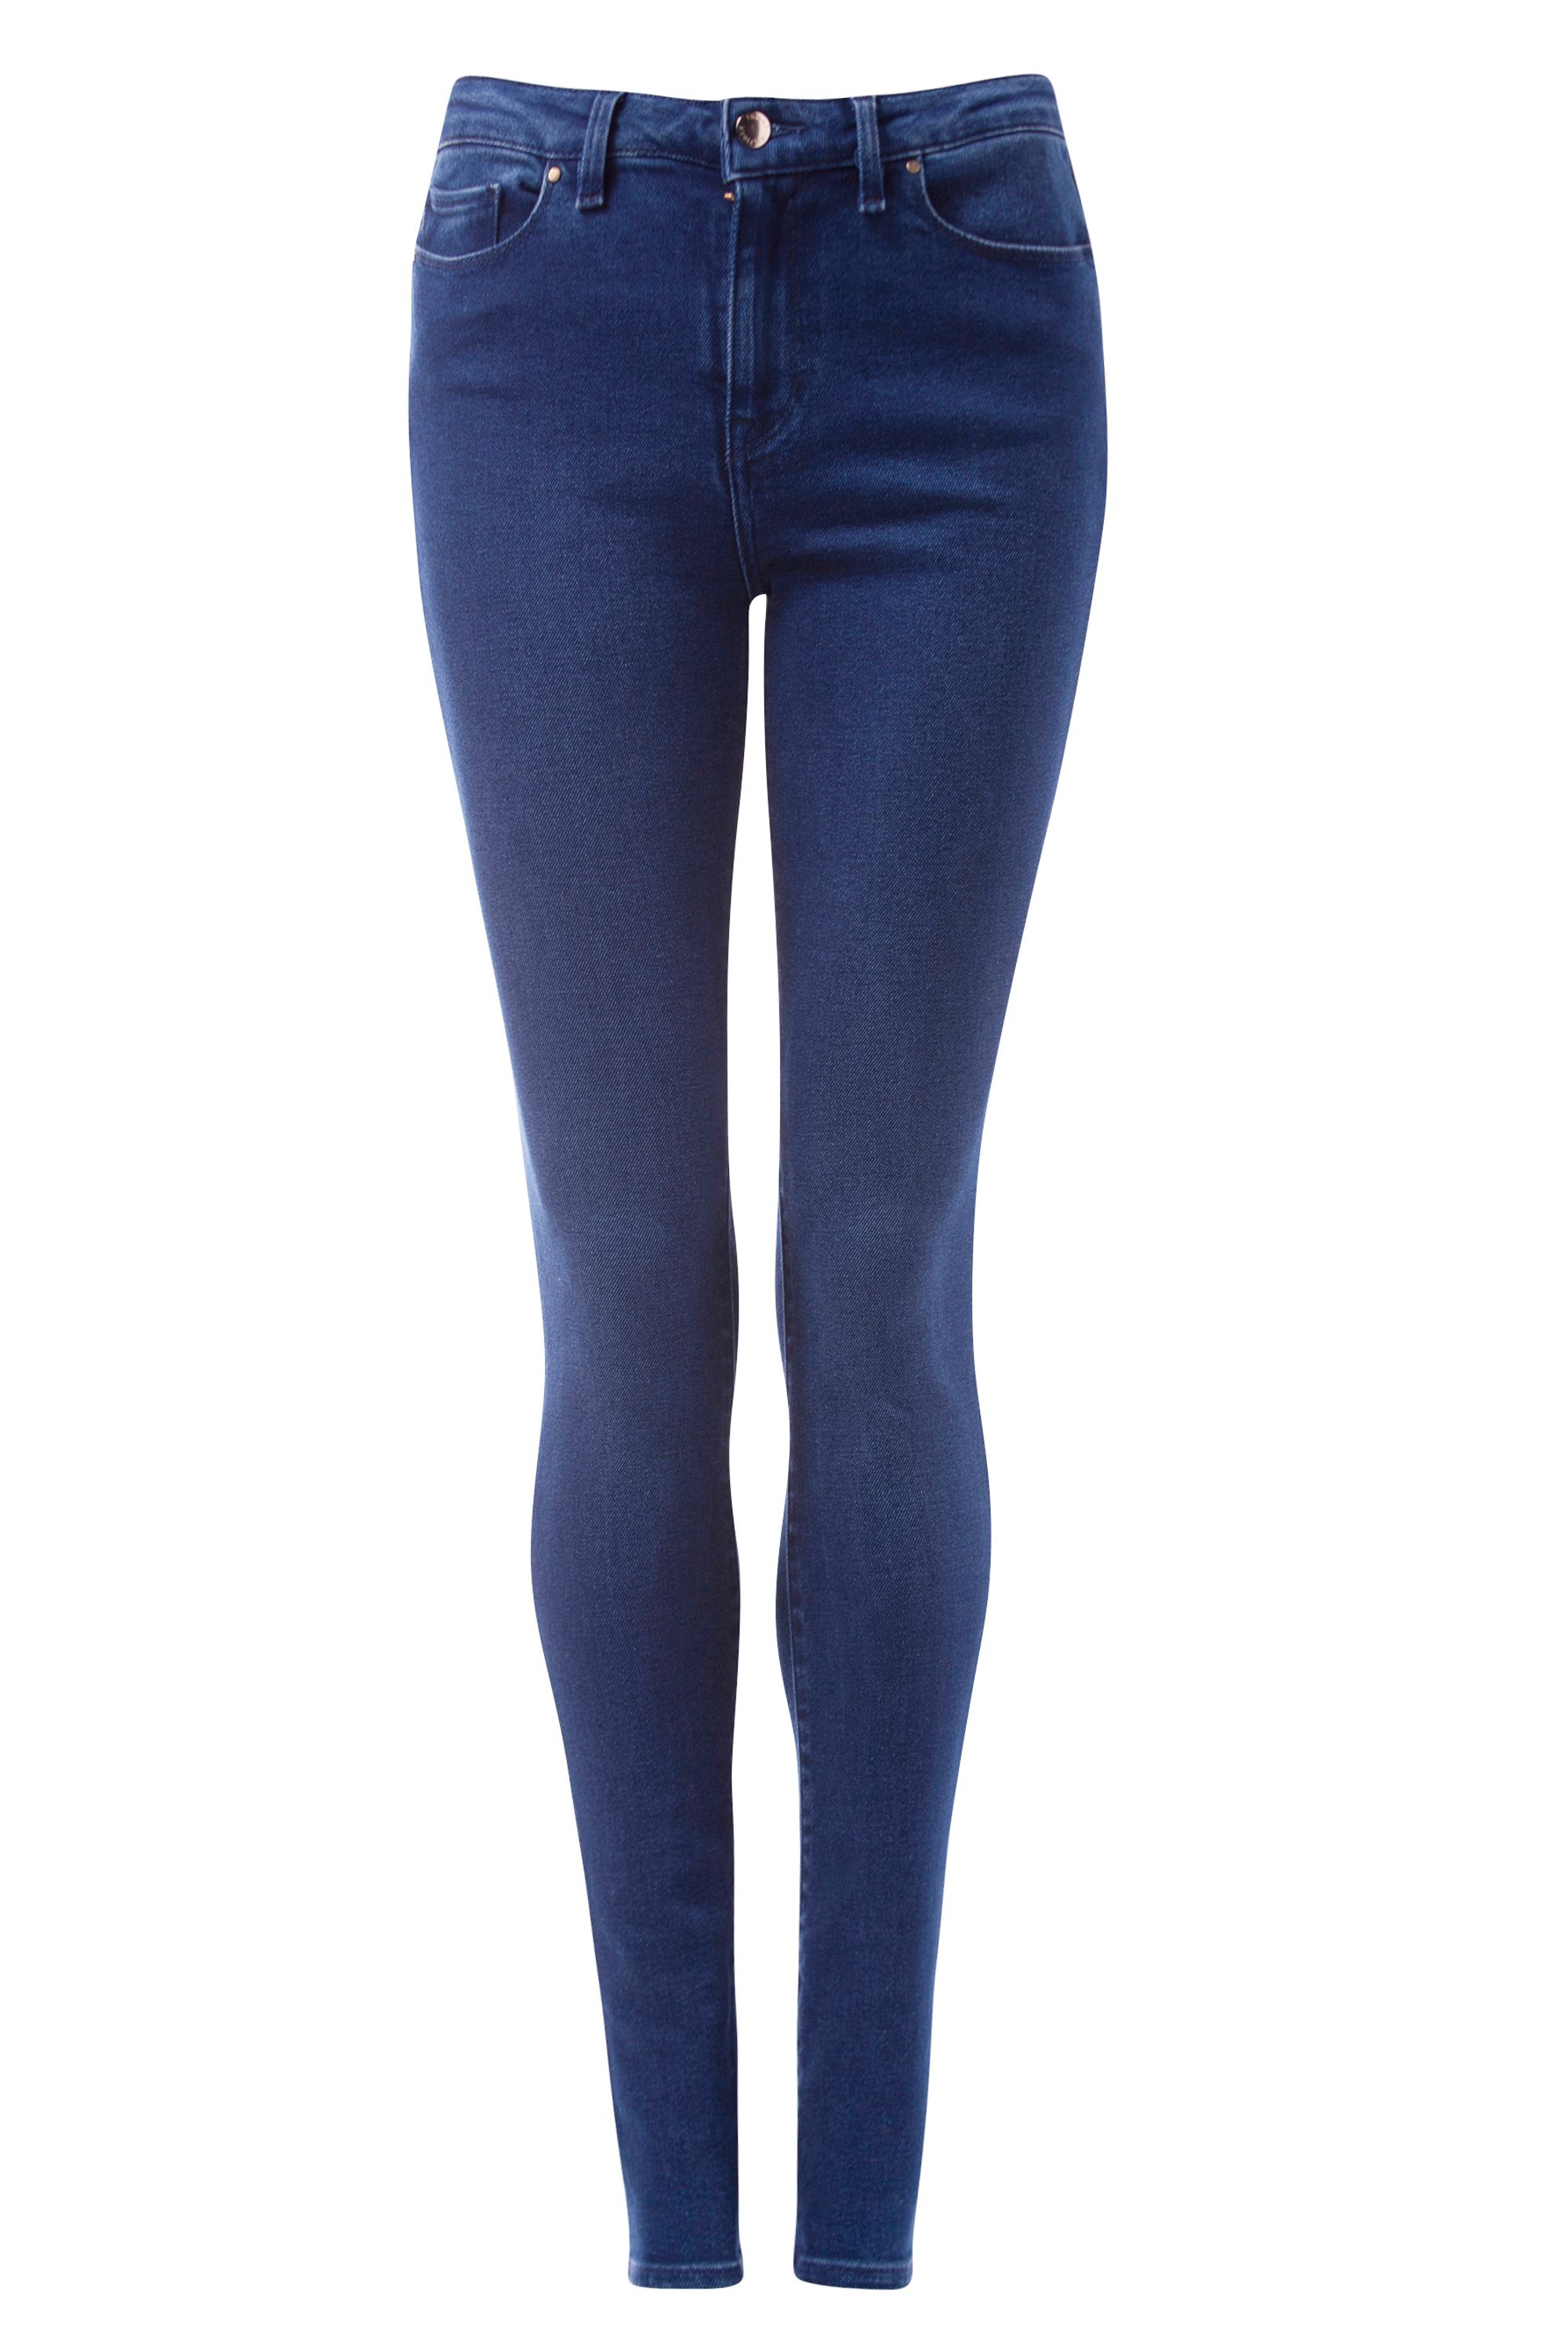 Tommy Hilfiger Como PushUp Cynthia Jeans Blue